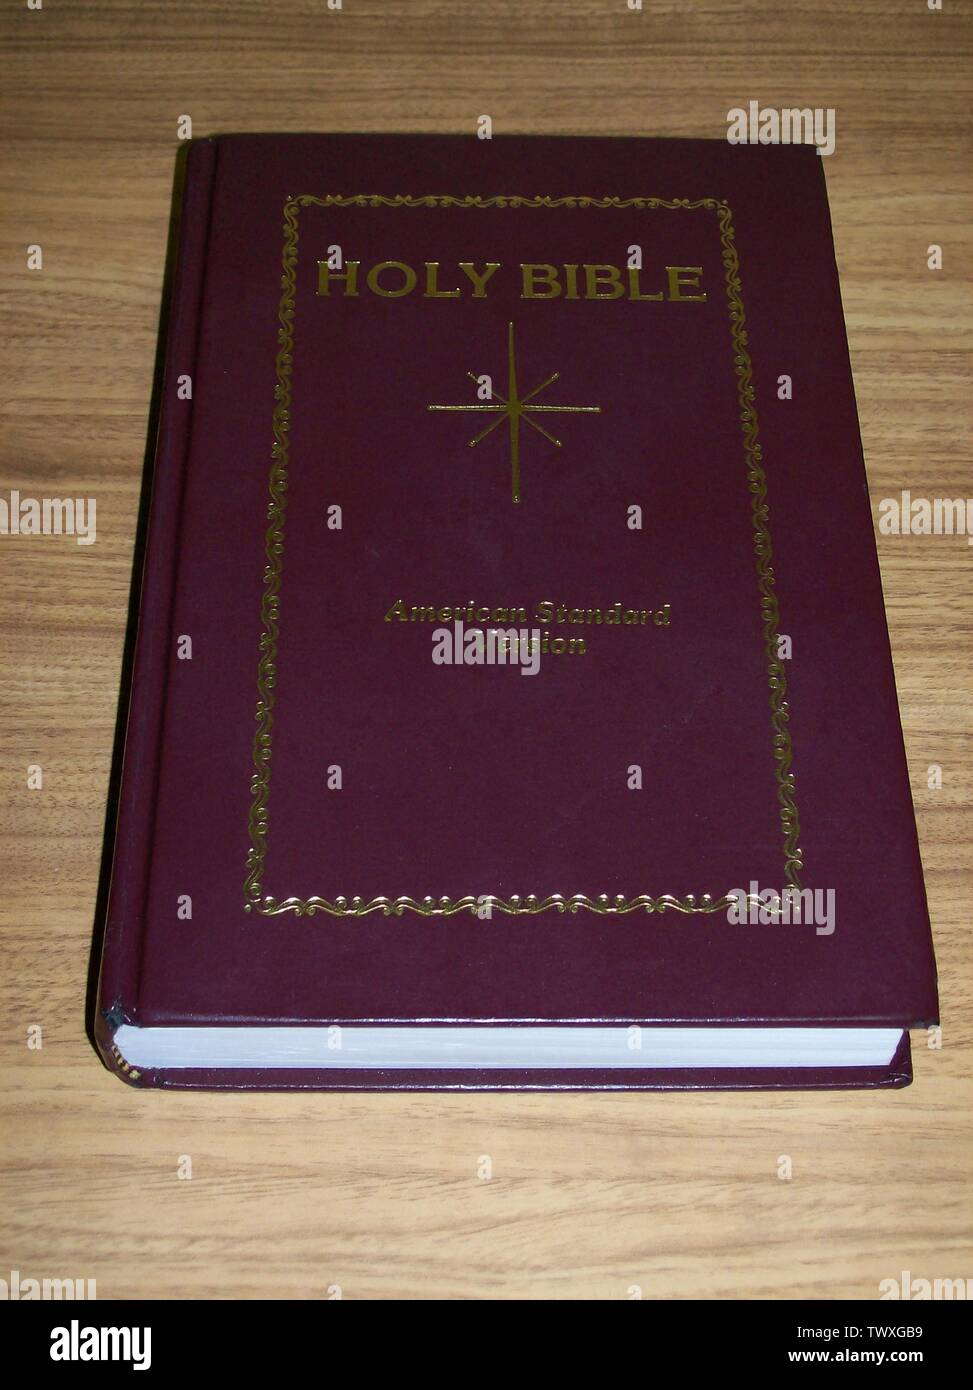 'English: This is a photo I took of my personal copy of Star Bible's re-release of the American Standard Version on September 15, 2007 at about 7:15 pm CDT. I created the photo. The American Standard Version, formerly a copyrighted work, has passed into the public domain. No challenge to Star Bible's ability to sell the ASV is implied. This image is being inserted into the article on the American Standard Version.; 16 September 2007 (original upload date); Transferred from en.wikipedia to Commons by Liftarn using CommonsHelper.; JoBrLa at English Wikipedia; ' - Stock Image